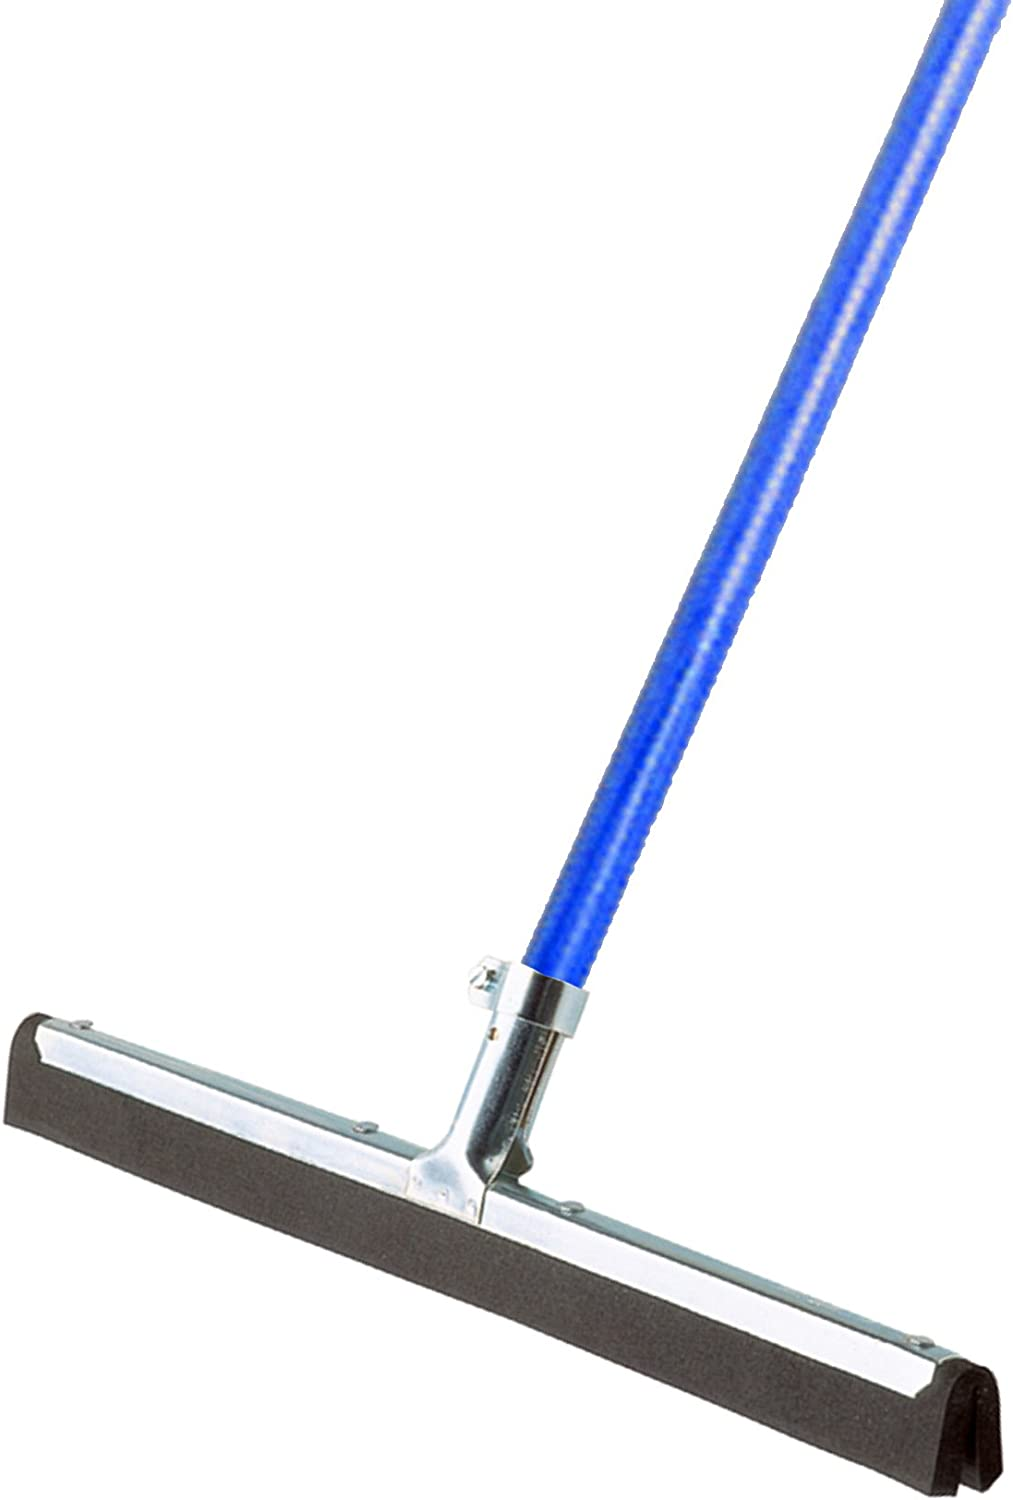 Ettore 61054 Wipe and Dry 18-Inch Floor Squeegee with 53-Inch Handle